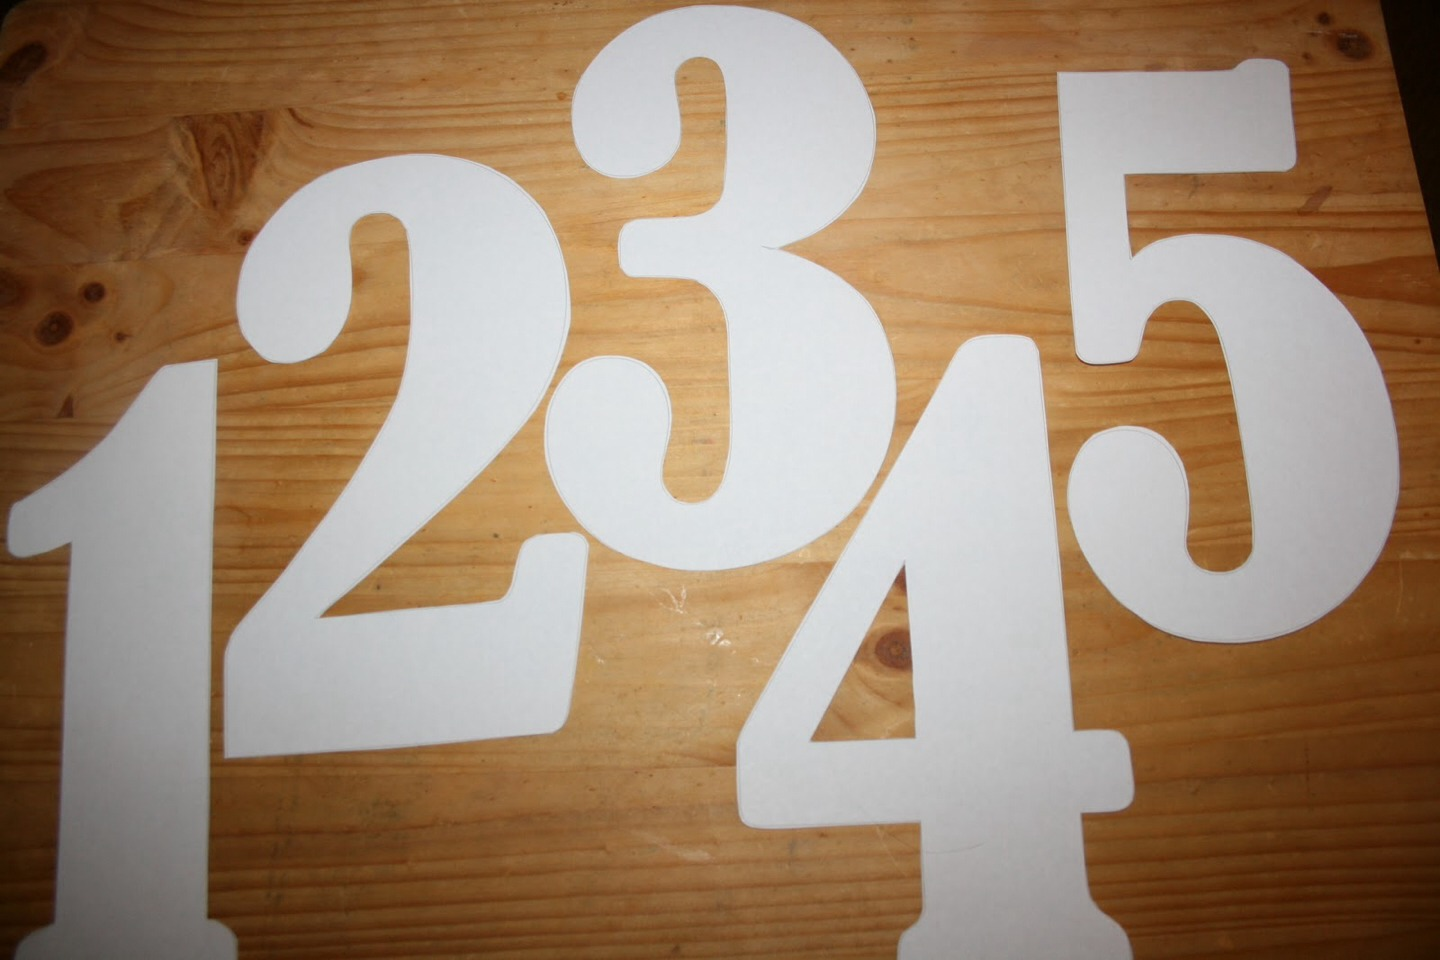 Now take your cut out numbers and glue them to your 2 wooden blocks ! For 1 block u will put the numbers: 0,1,2,6,7,8 ! For the other block you will put the numbers: 0,3,5,9